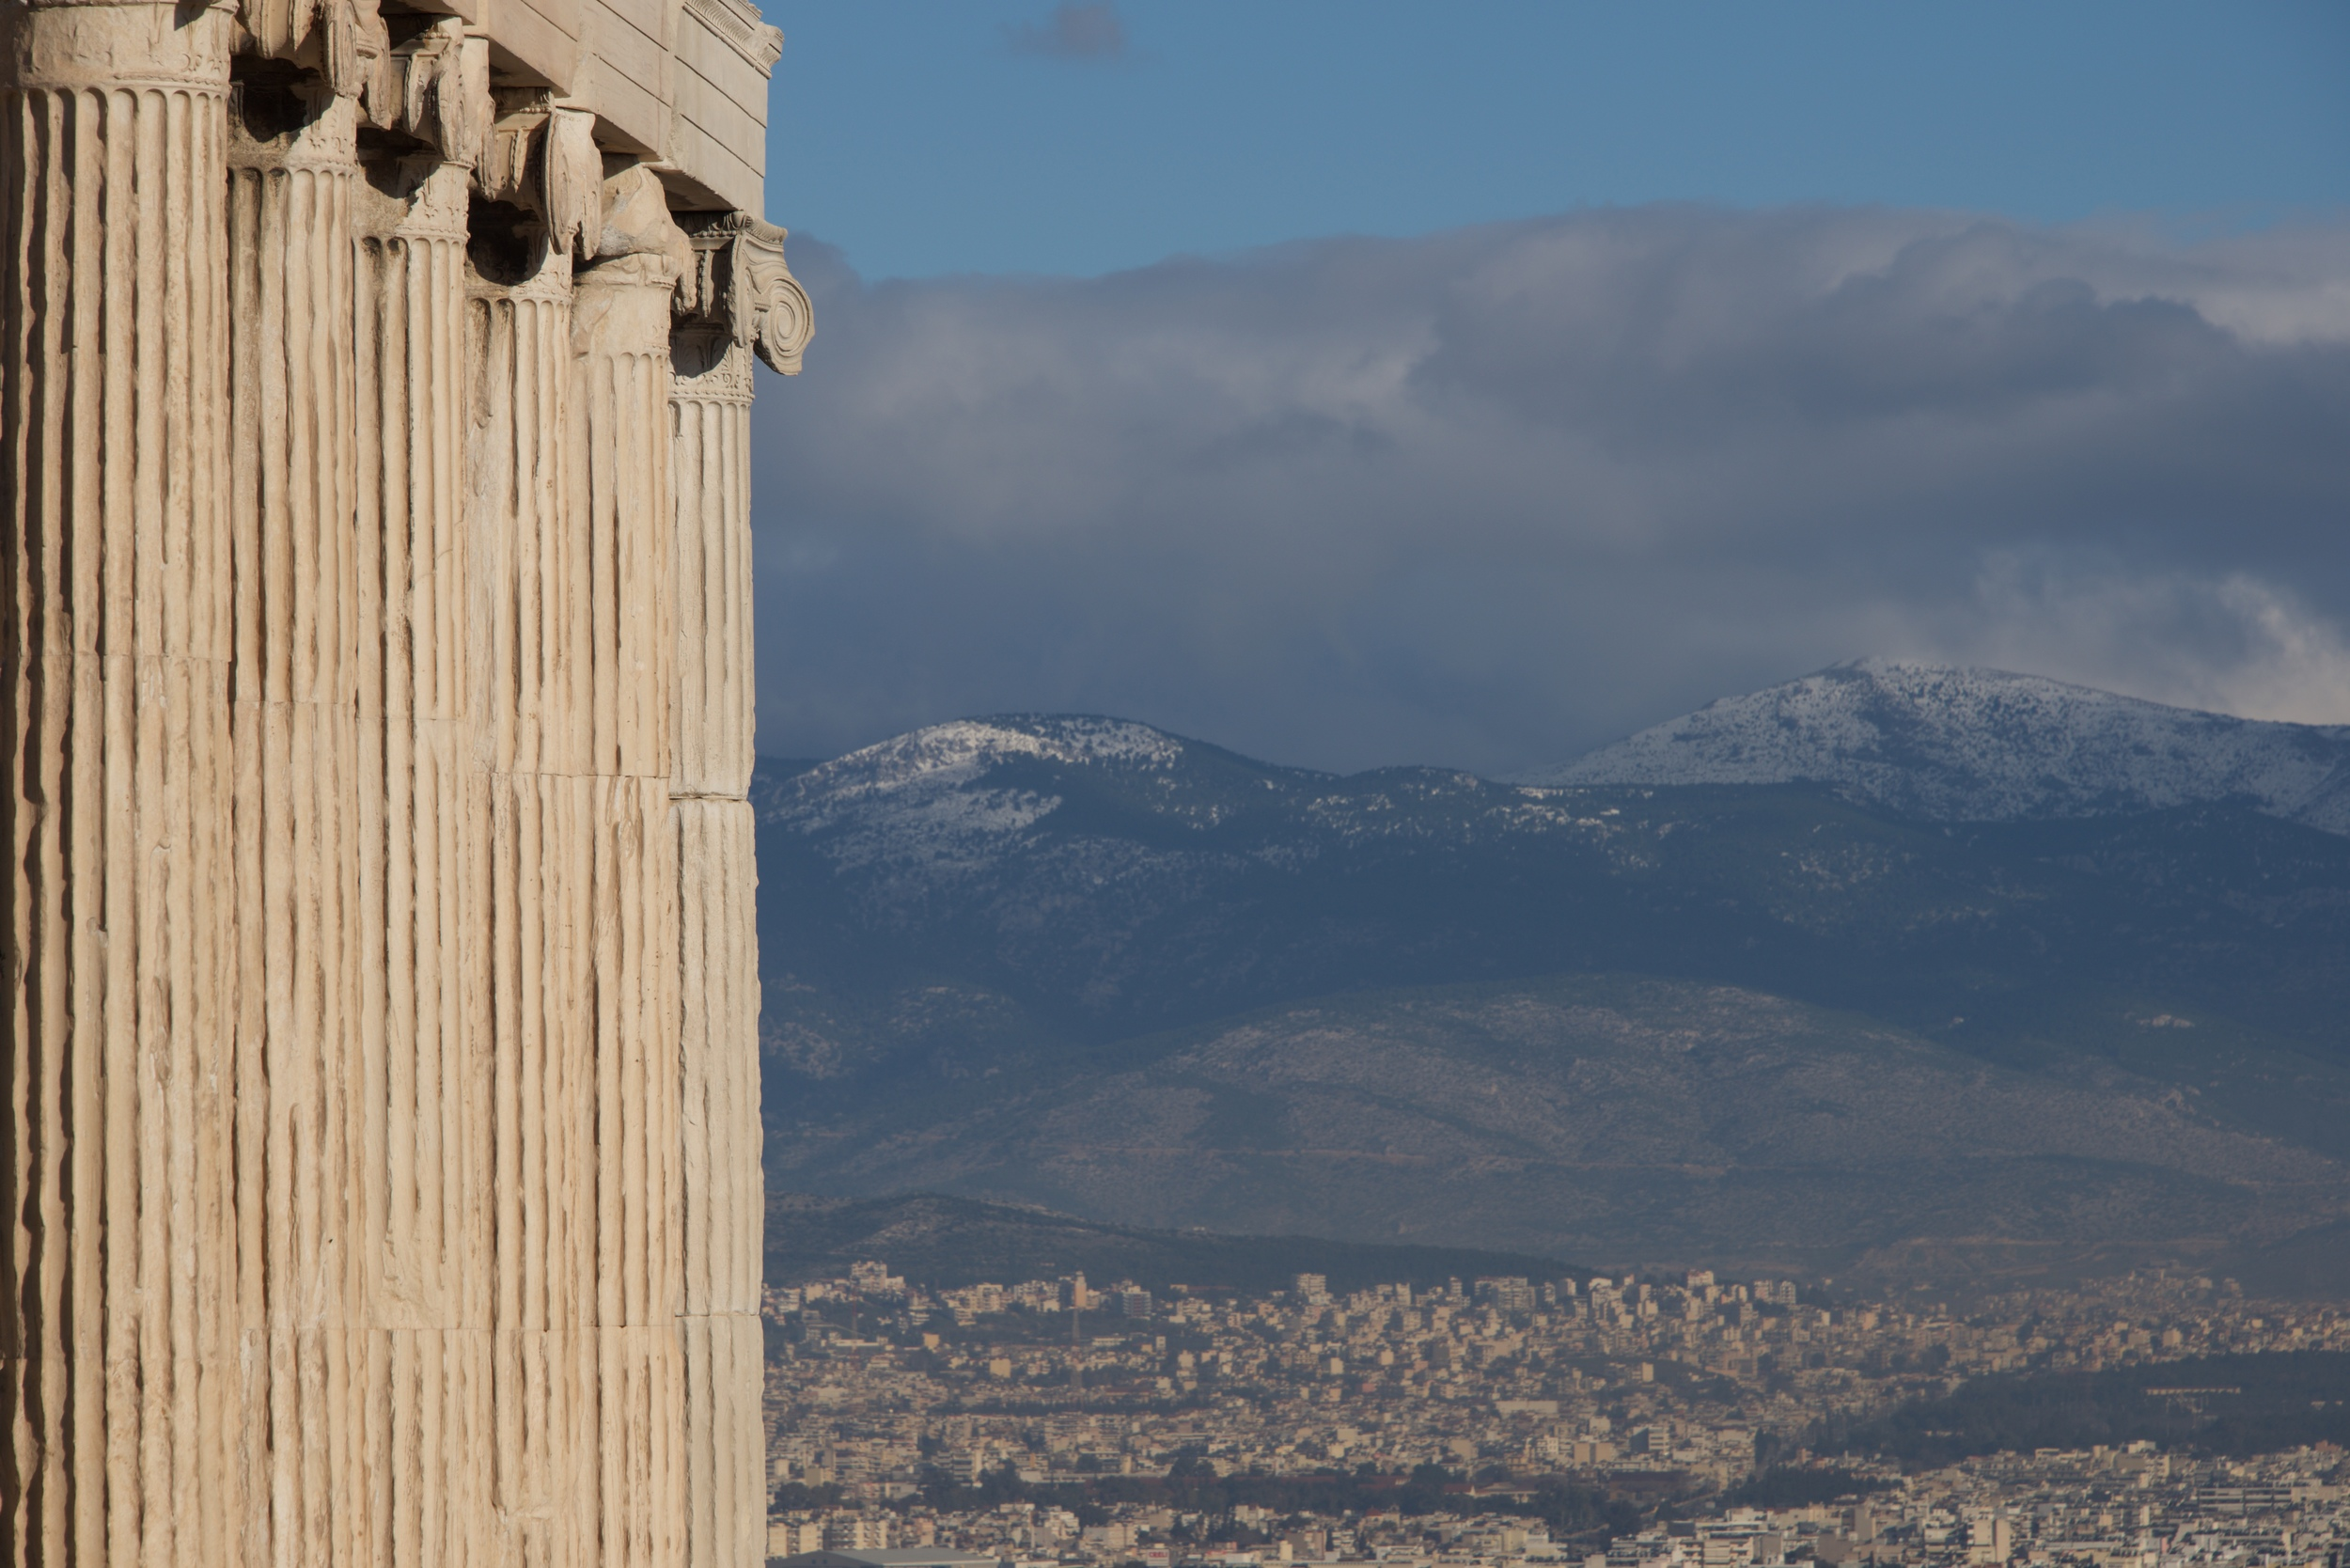 Athens and hills seen beyond Erechtheion colonnade.jpg